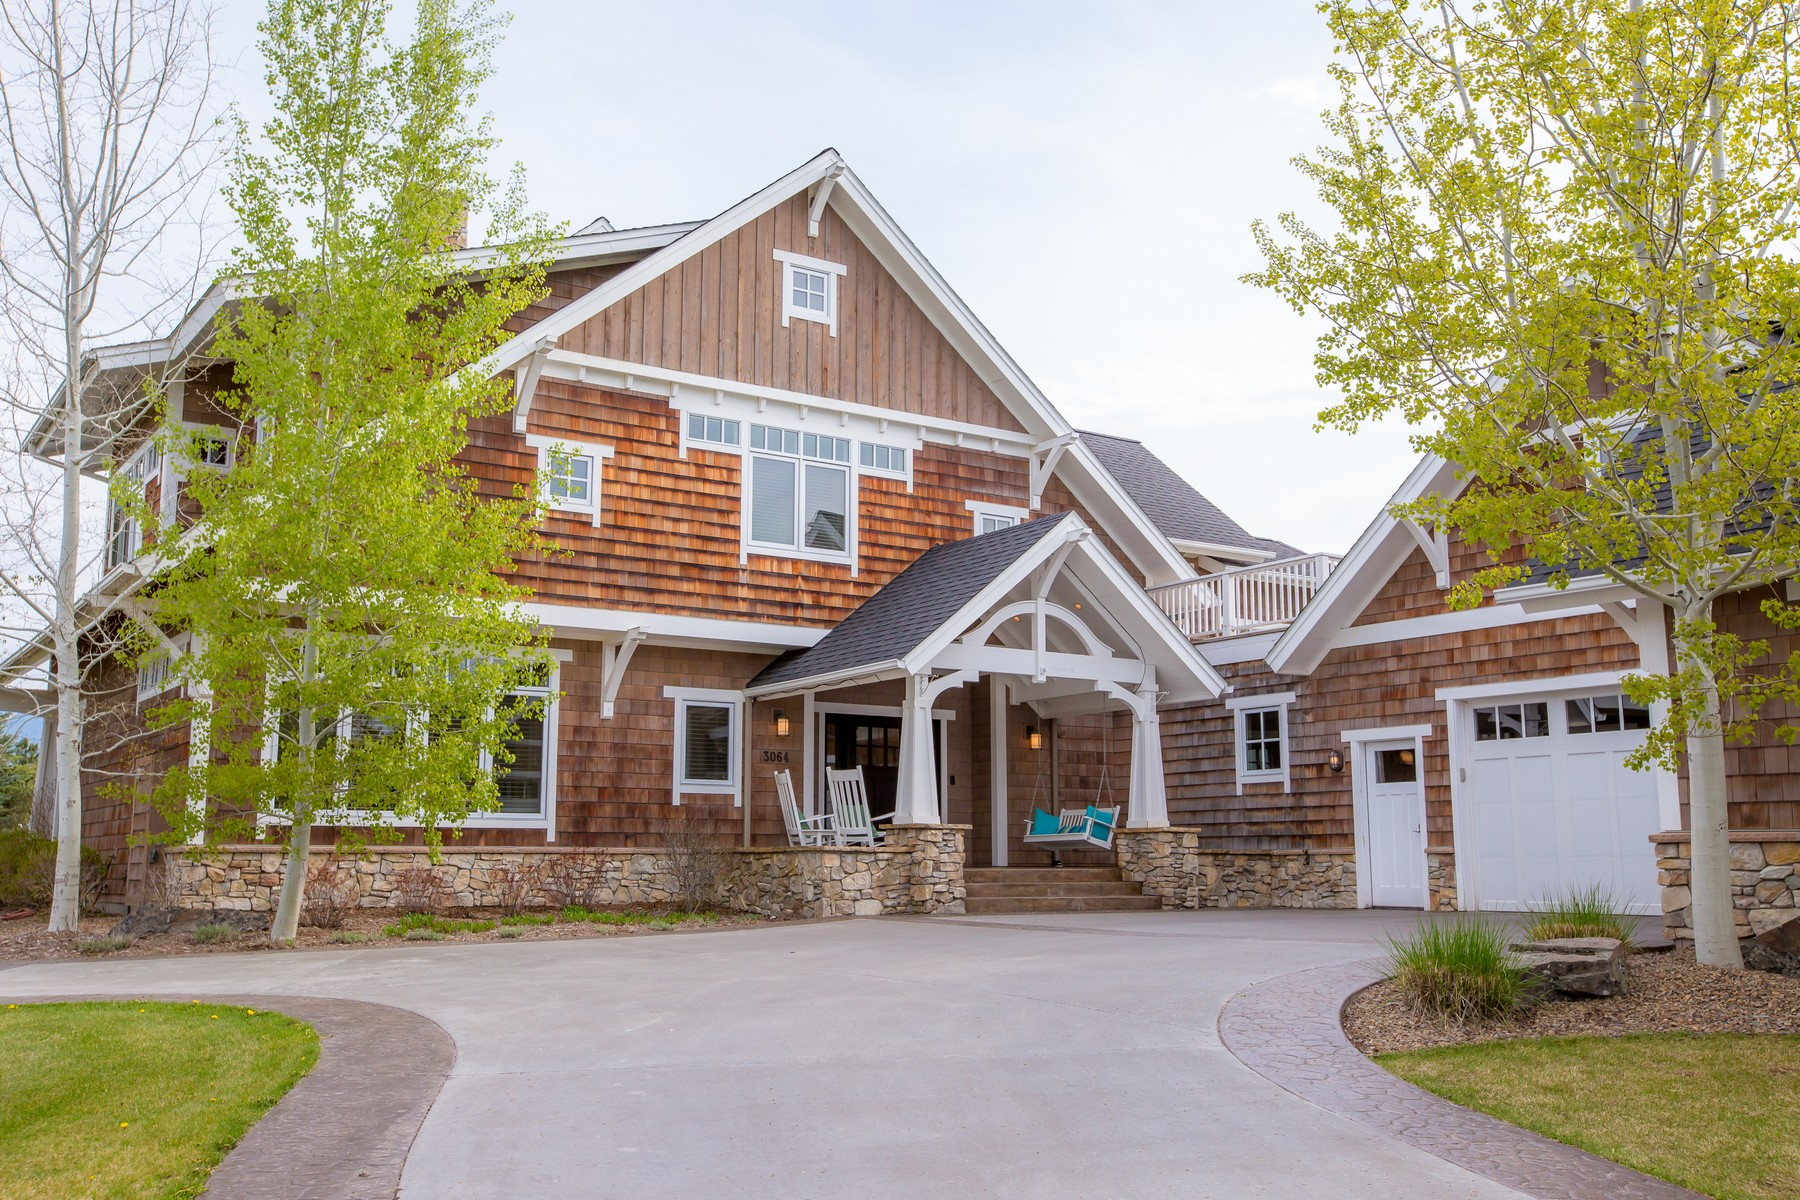 Additional photo for property listing at 3064 River Lakes Dr , Whitefish, MT 59937 3064  River Lakes Dr Whitefish, Montana 59937 United States